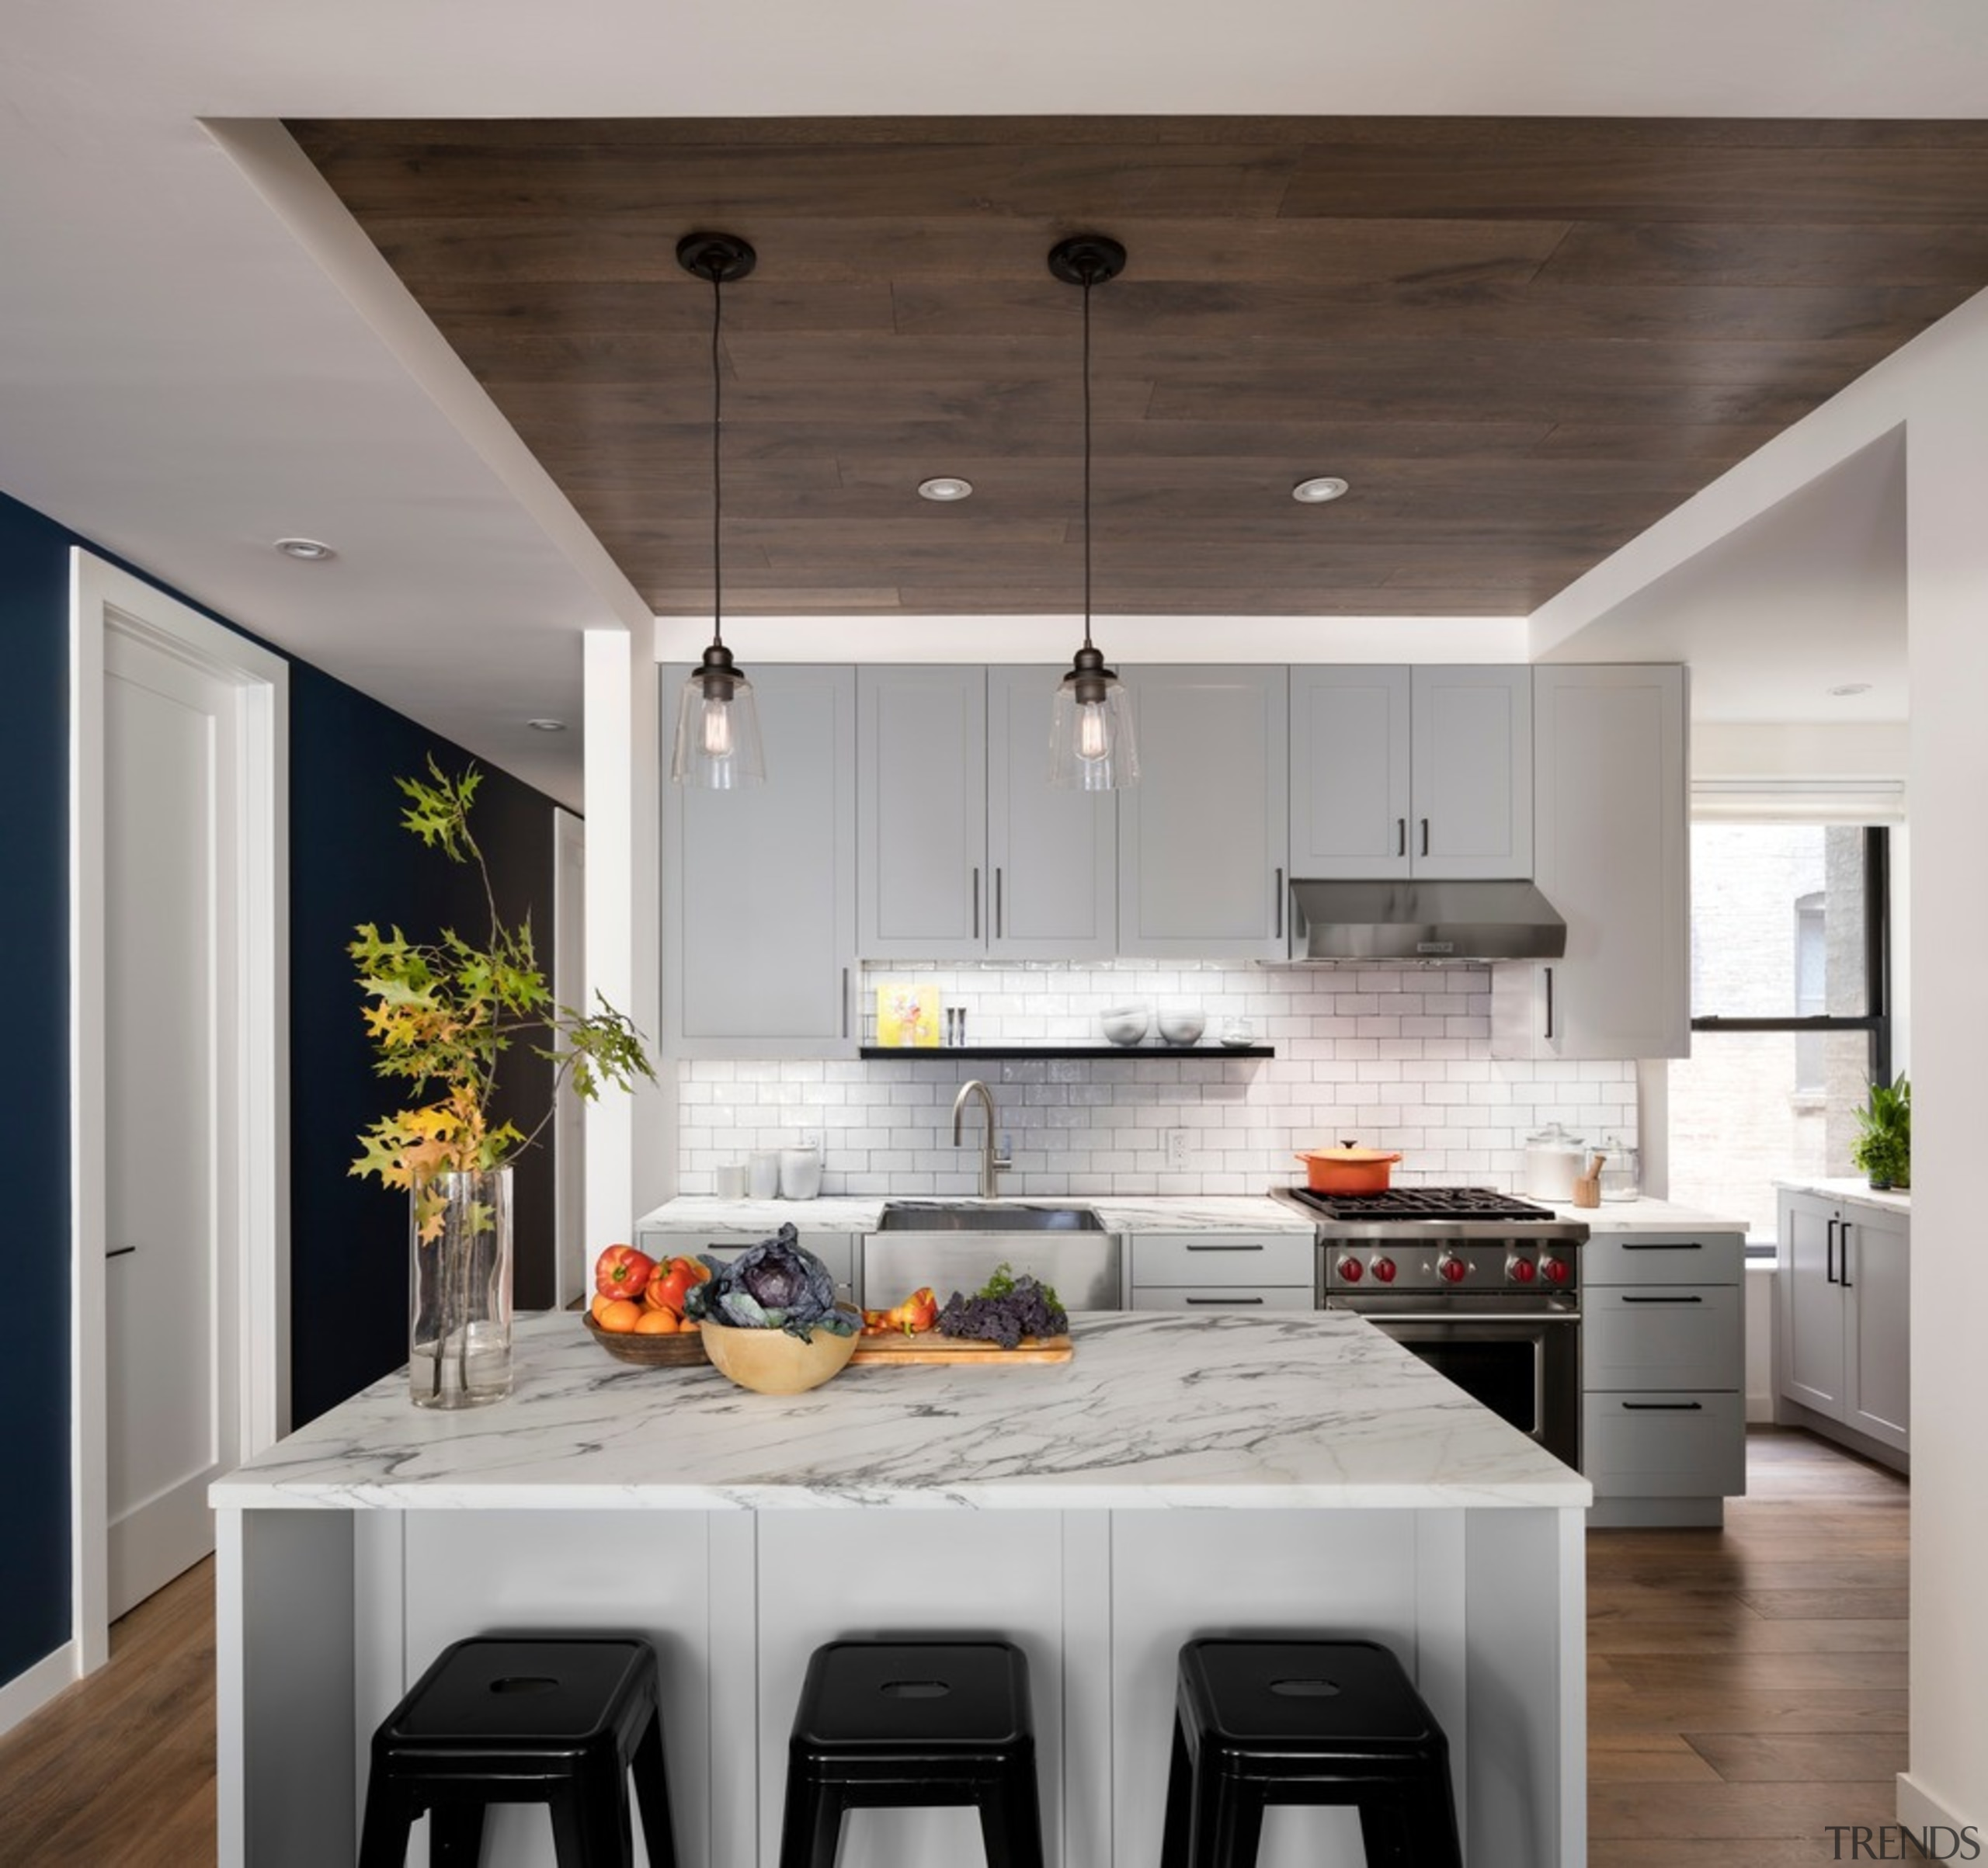 Semicustom kitchen cabinets and statuarietto marble countertops with architecture, building, cabinetry, ceiling, countertop, cuisine classique, cupboard, dining room, floor, flooring, furniture, hardwood, home, house, interior design, kitchen, kitchen stove, light fixture, major appliance, material property, property, room, table, white, wood flooring, gray